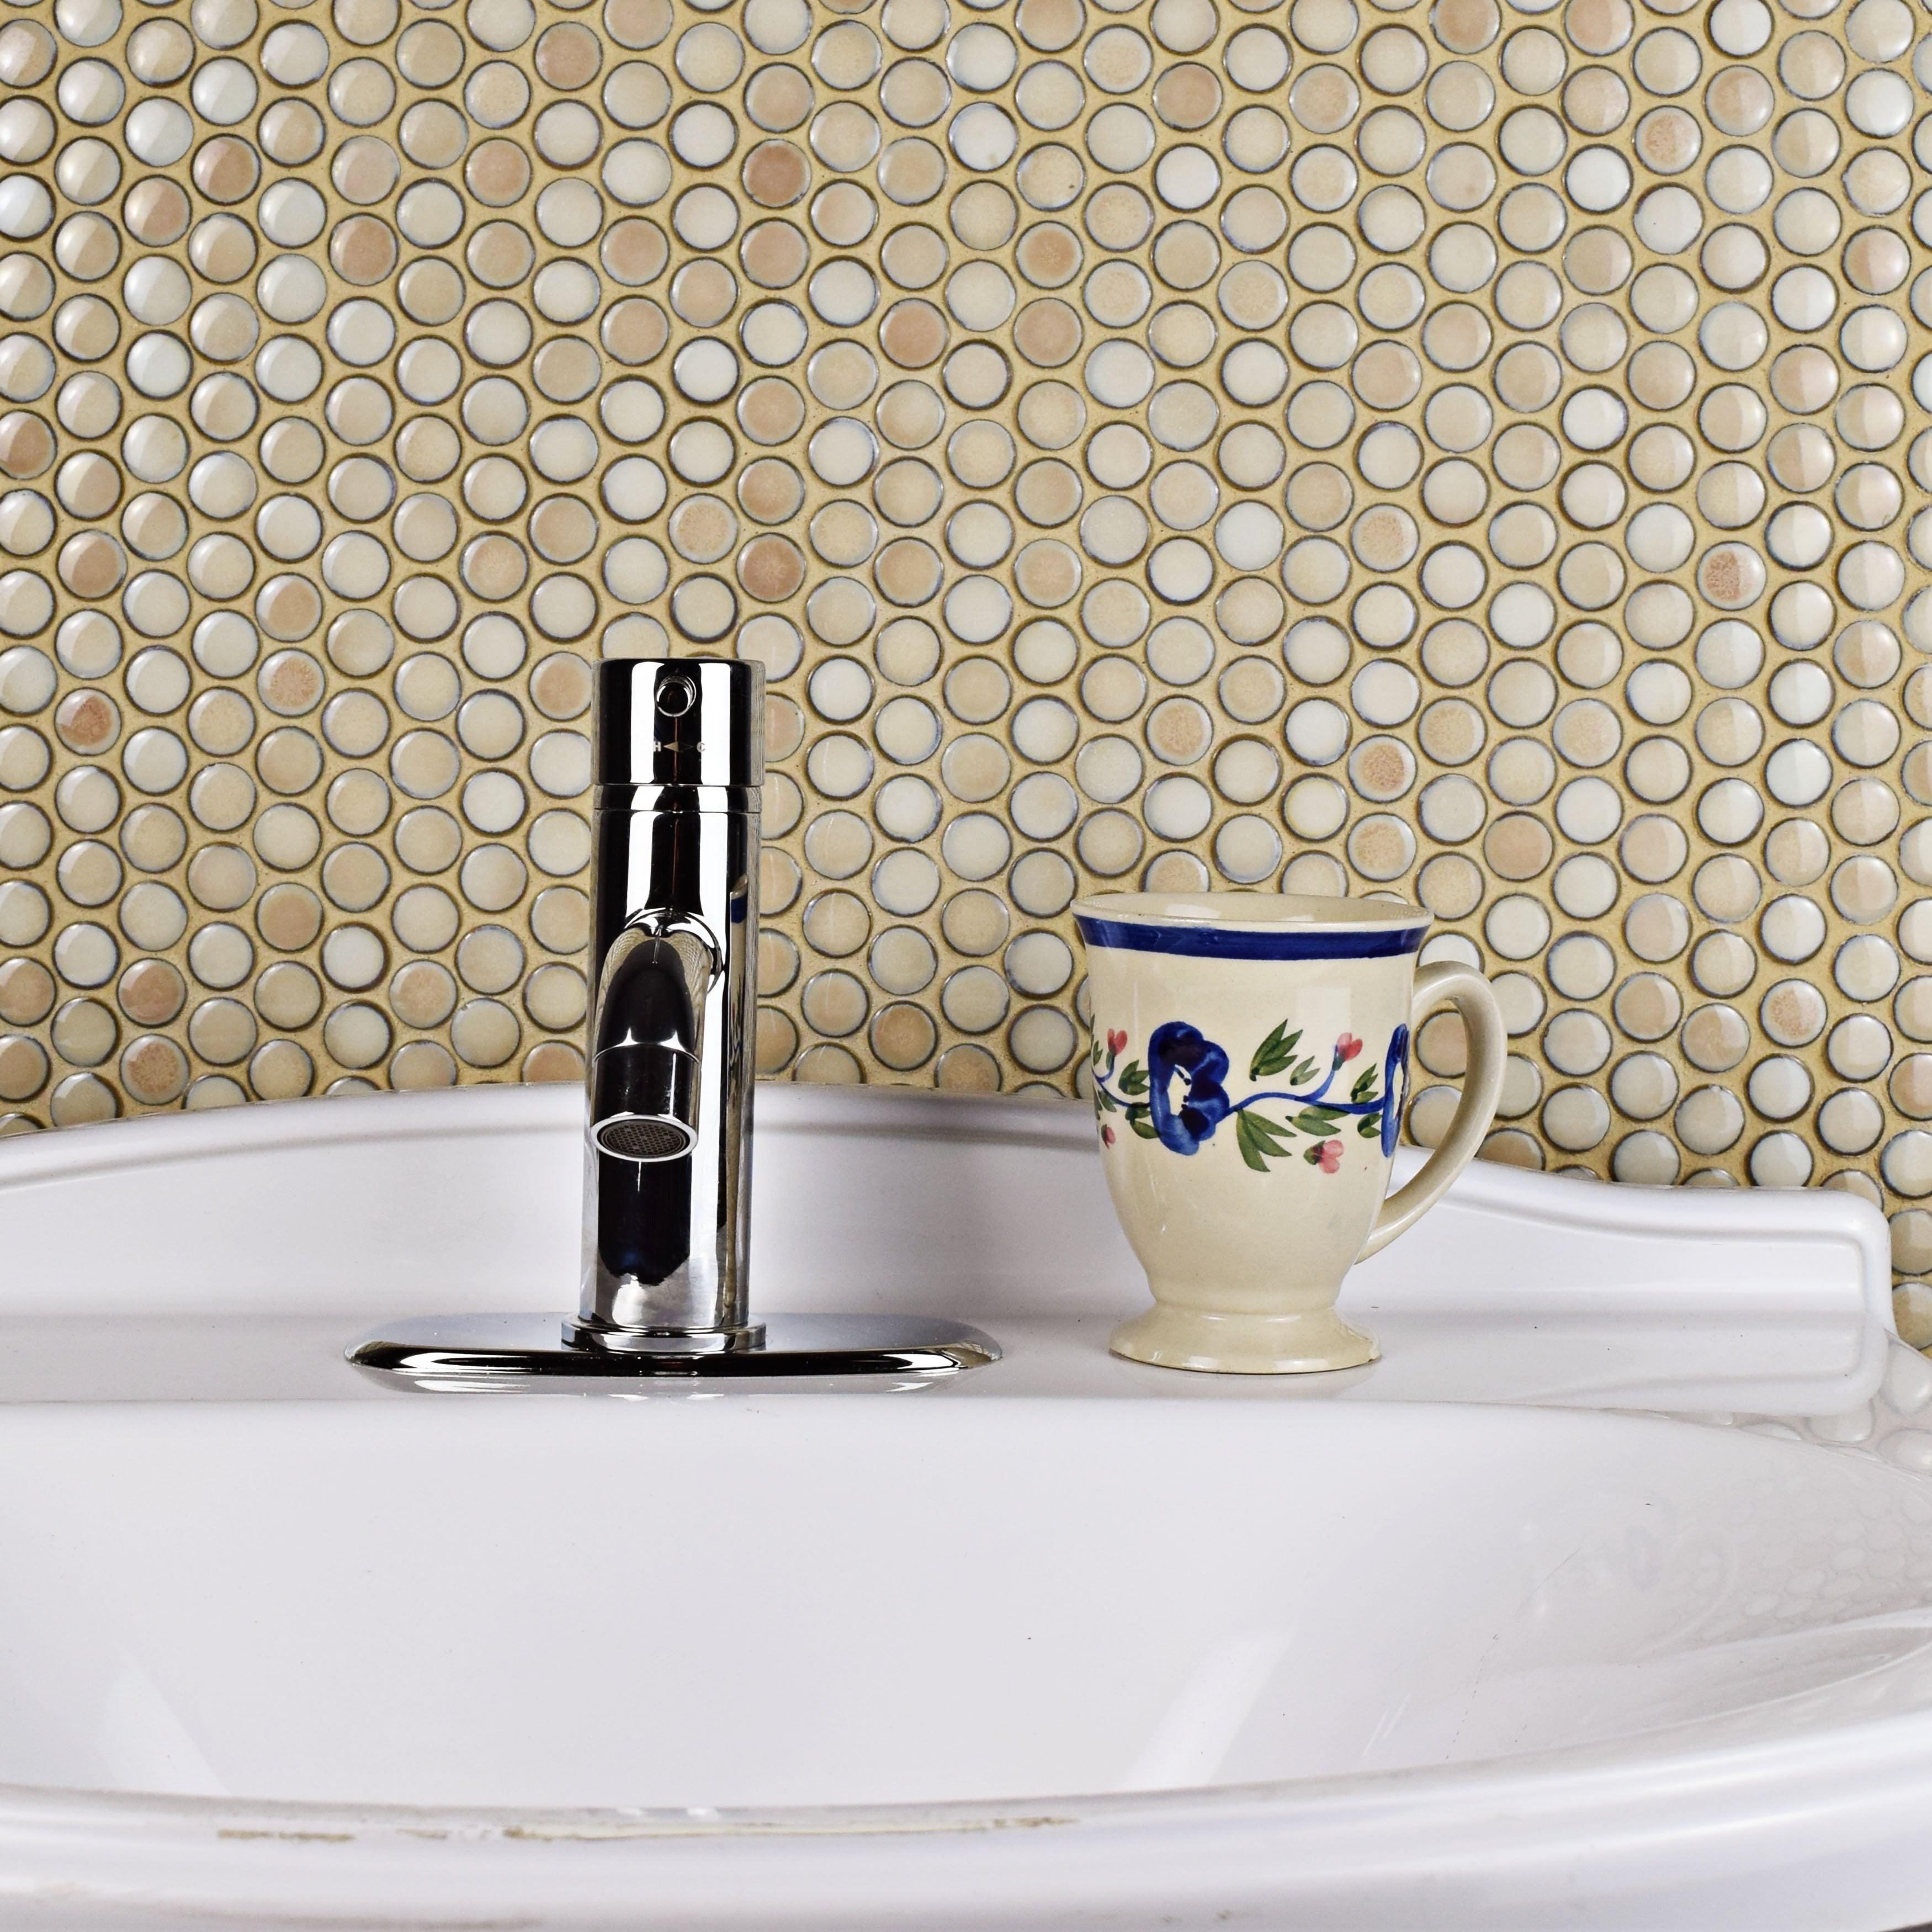 SomerTile 4x4.4-inch Penny Truffle Porcelain Mosaic Floor and Wall Tile  (4 tiles/4.4 sqft.)